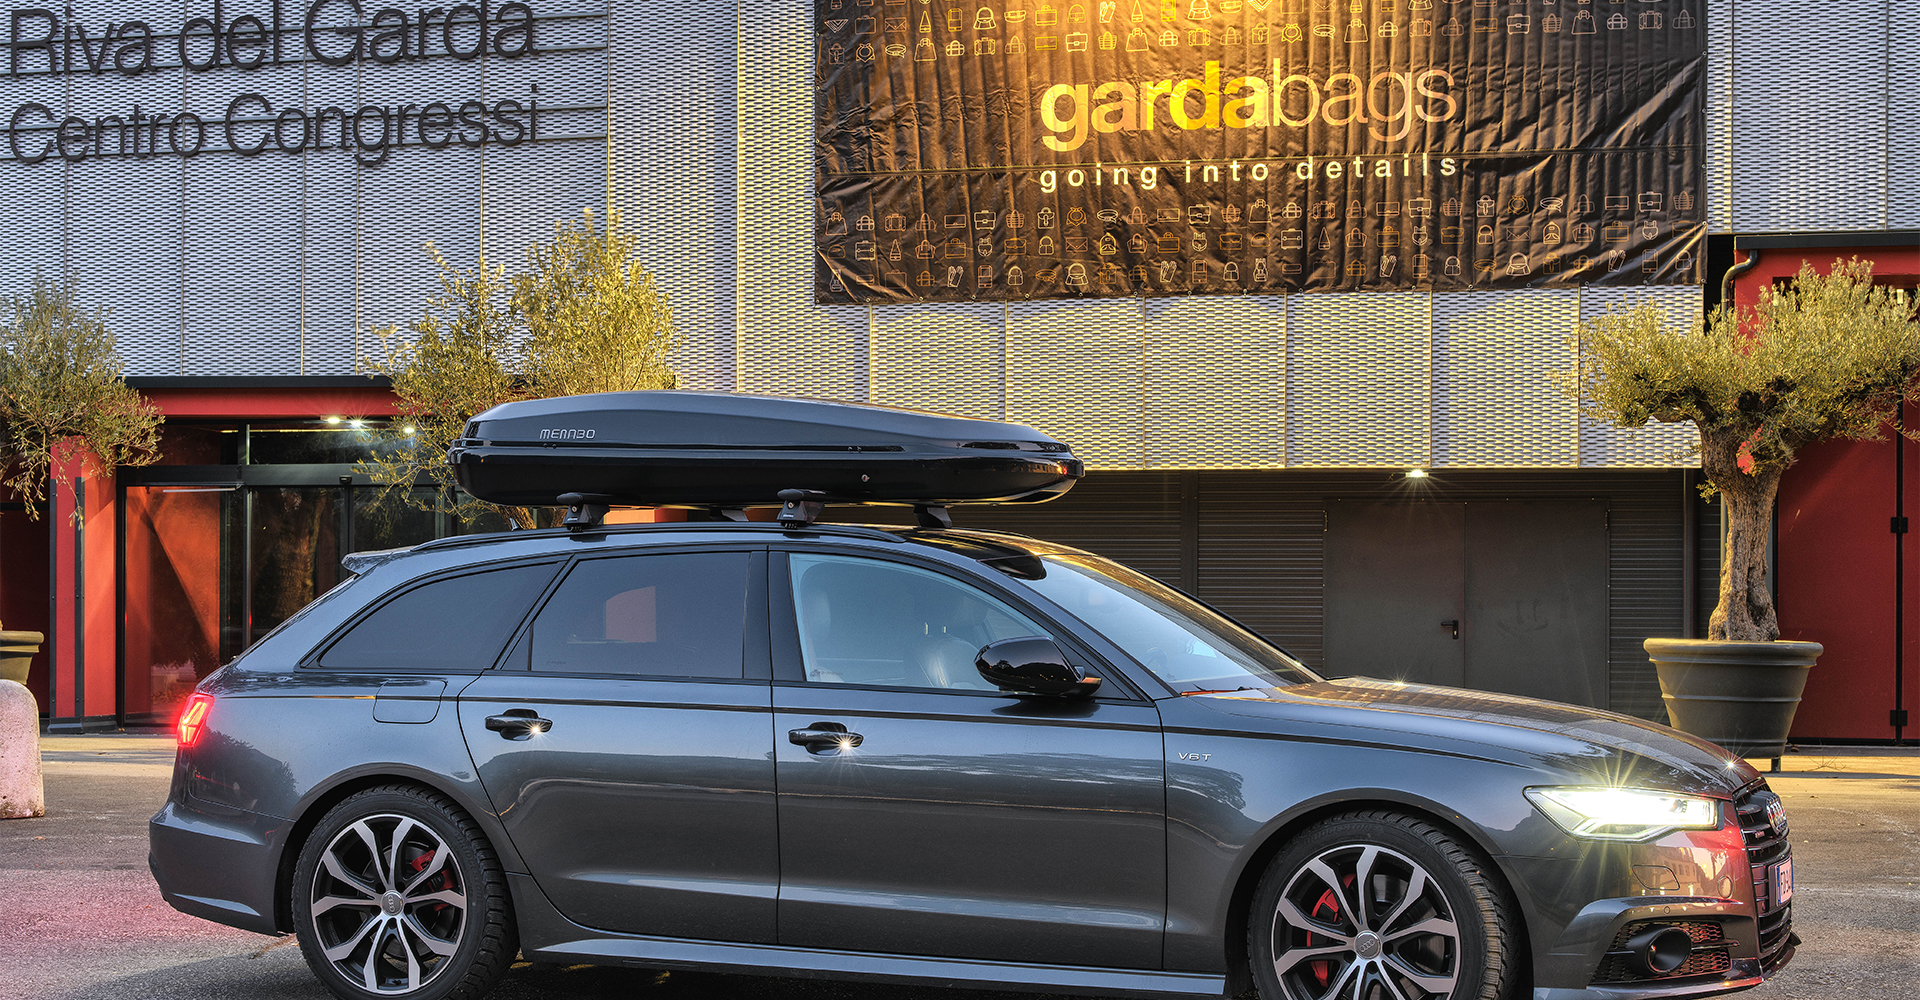 Roof cargo boxes